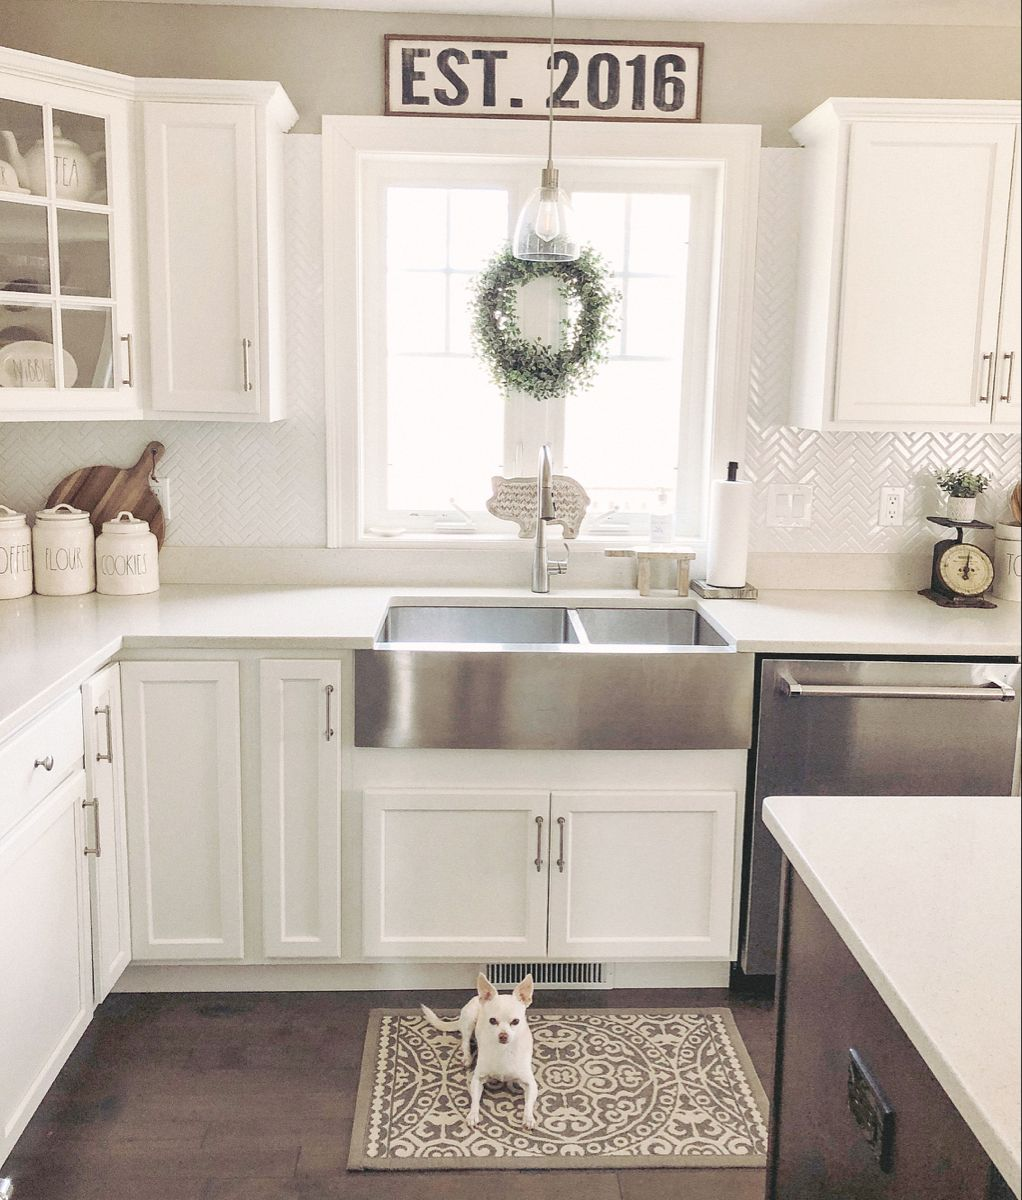 Bright And Airy Farmhouse Kitchen In 2020 Kitchen Farmhouse Kitchen Kitchen Cabinets